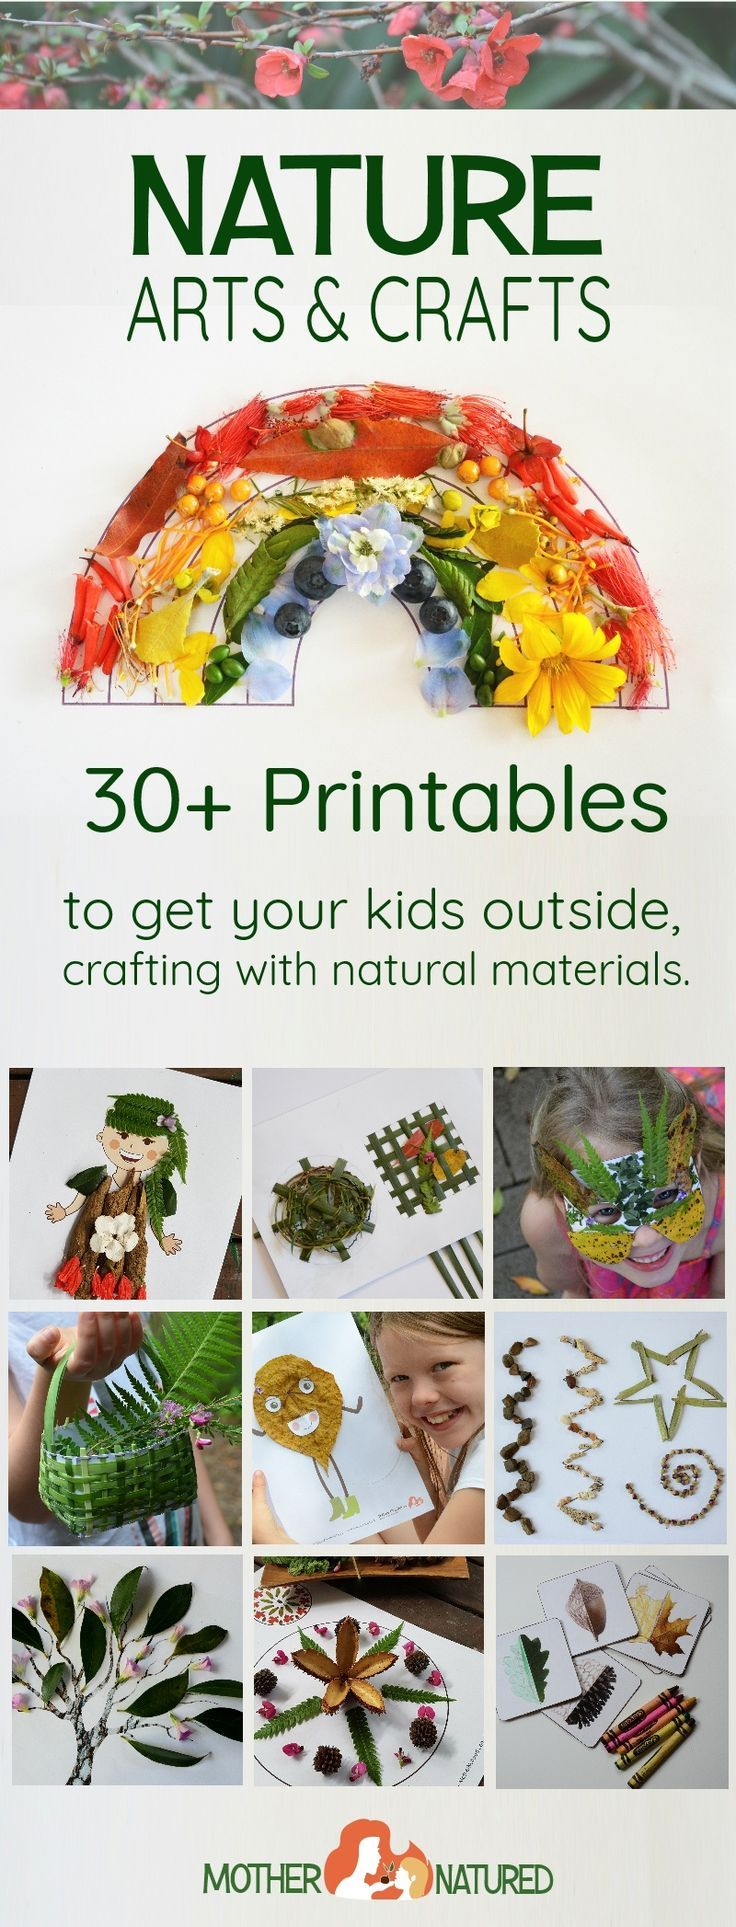 Nature Arts and Crafts printables to get your kids outside and manipulating natural materials. Just add nature!